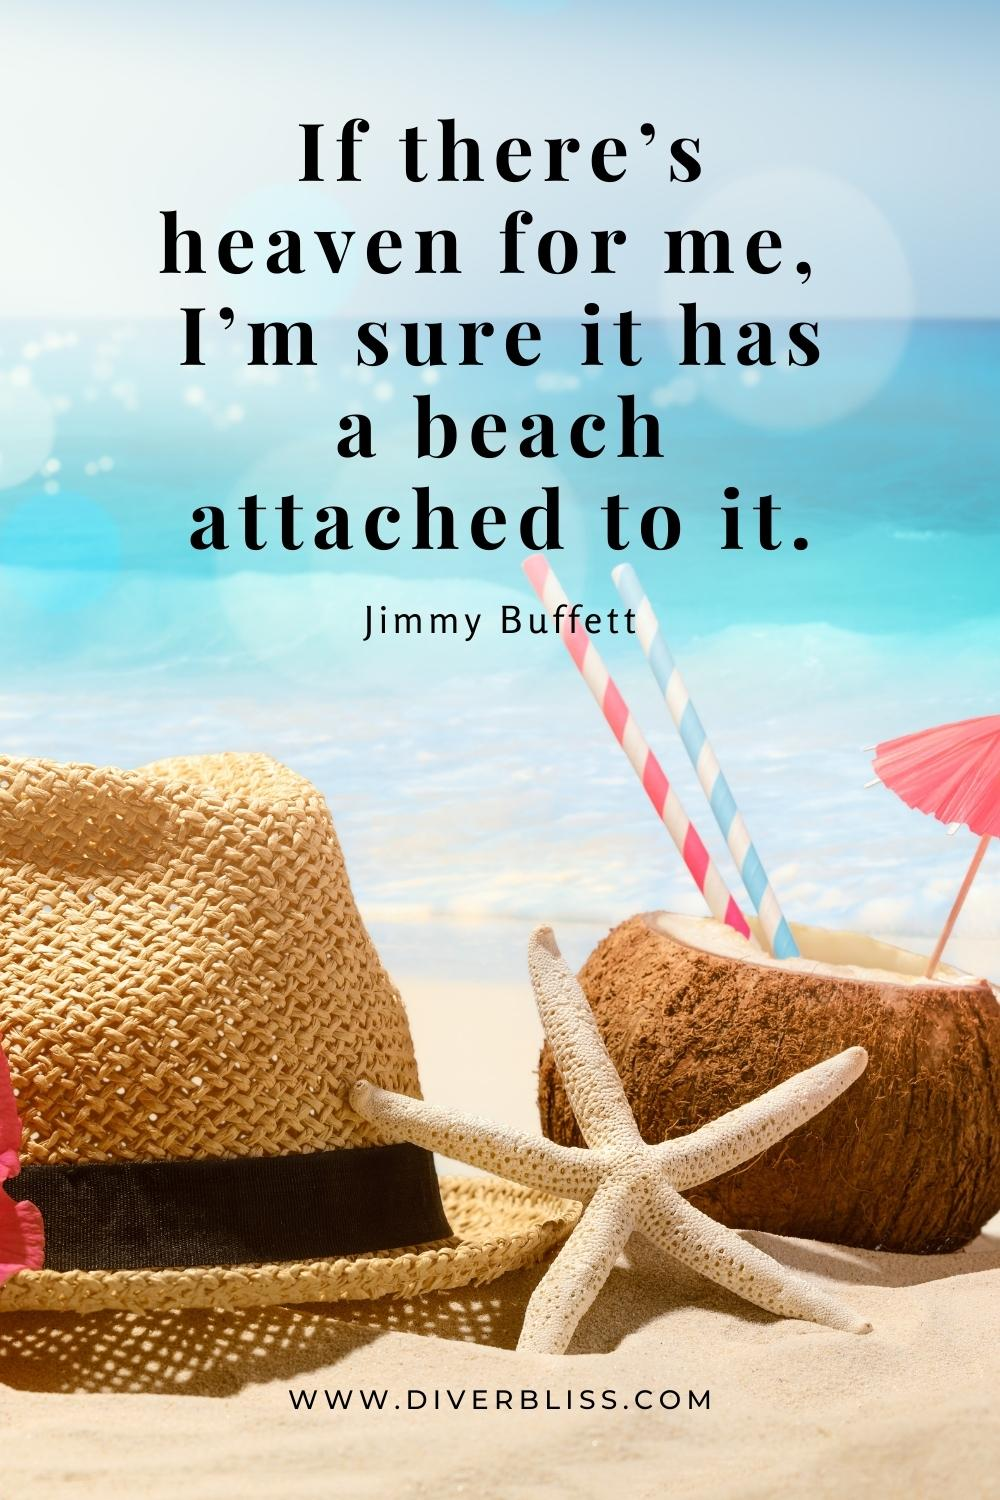 """""""If there's heaven for me, I'm sure it has a beach attached to it."""" —Jimmy Buffett"""